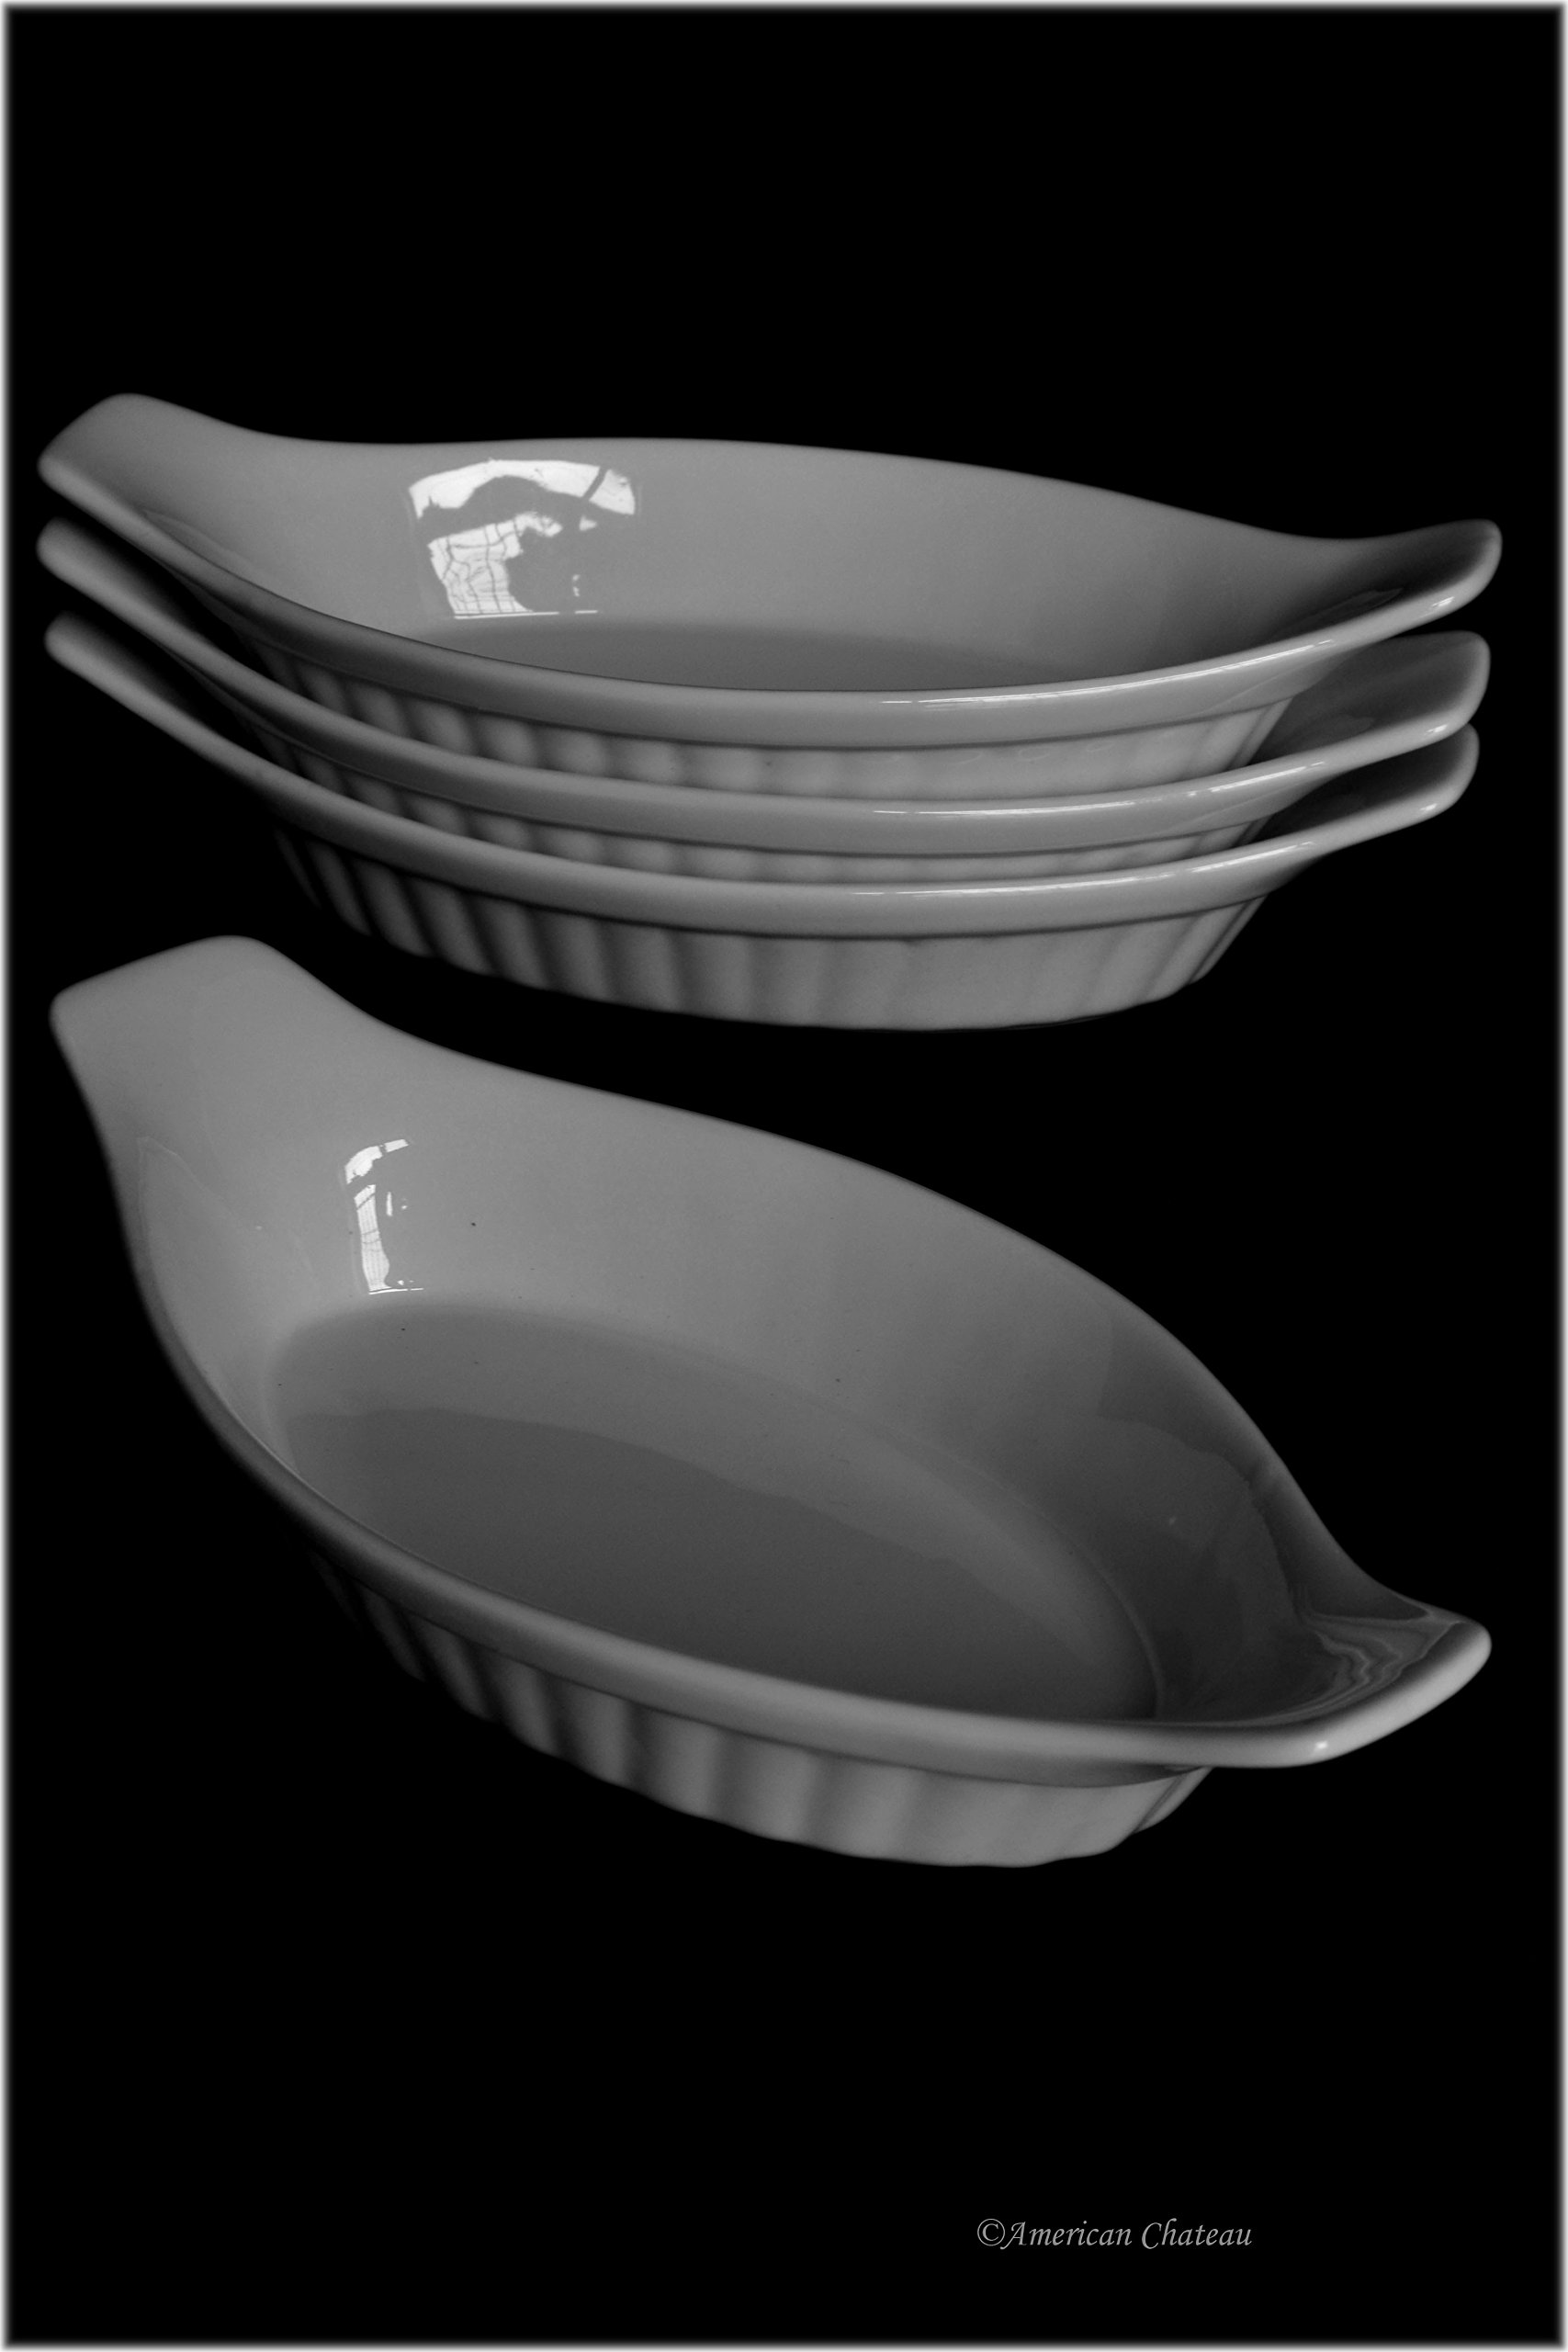 Set 4 Oval 9'' Oven-Safe White Porcelain Appetizer Au Gratin Dishes with Handles